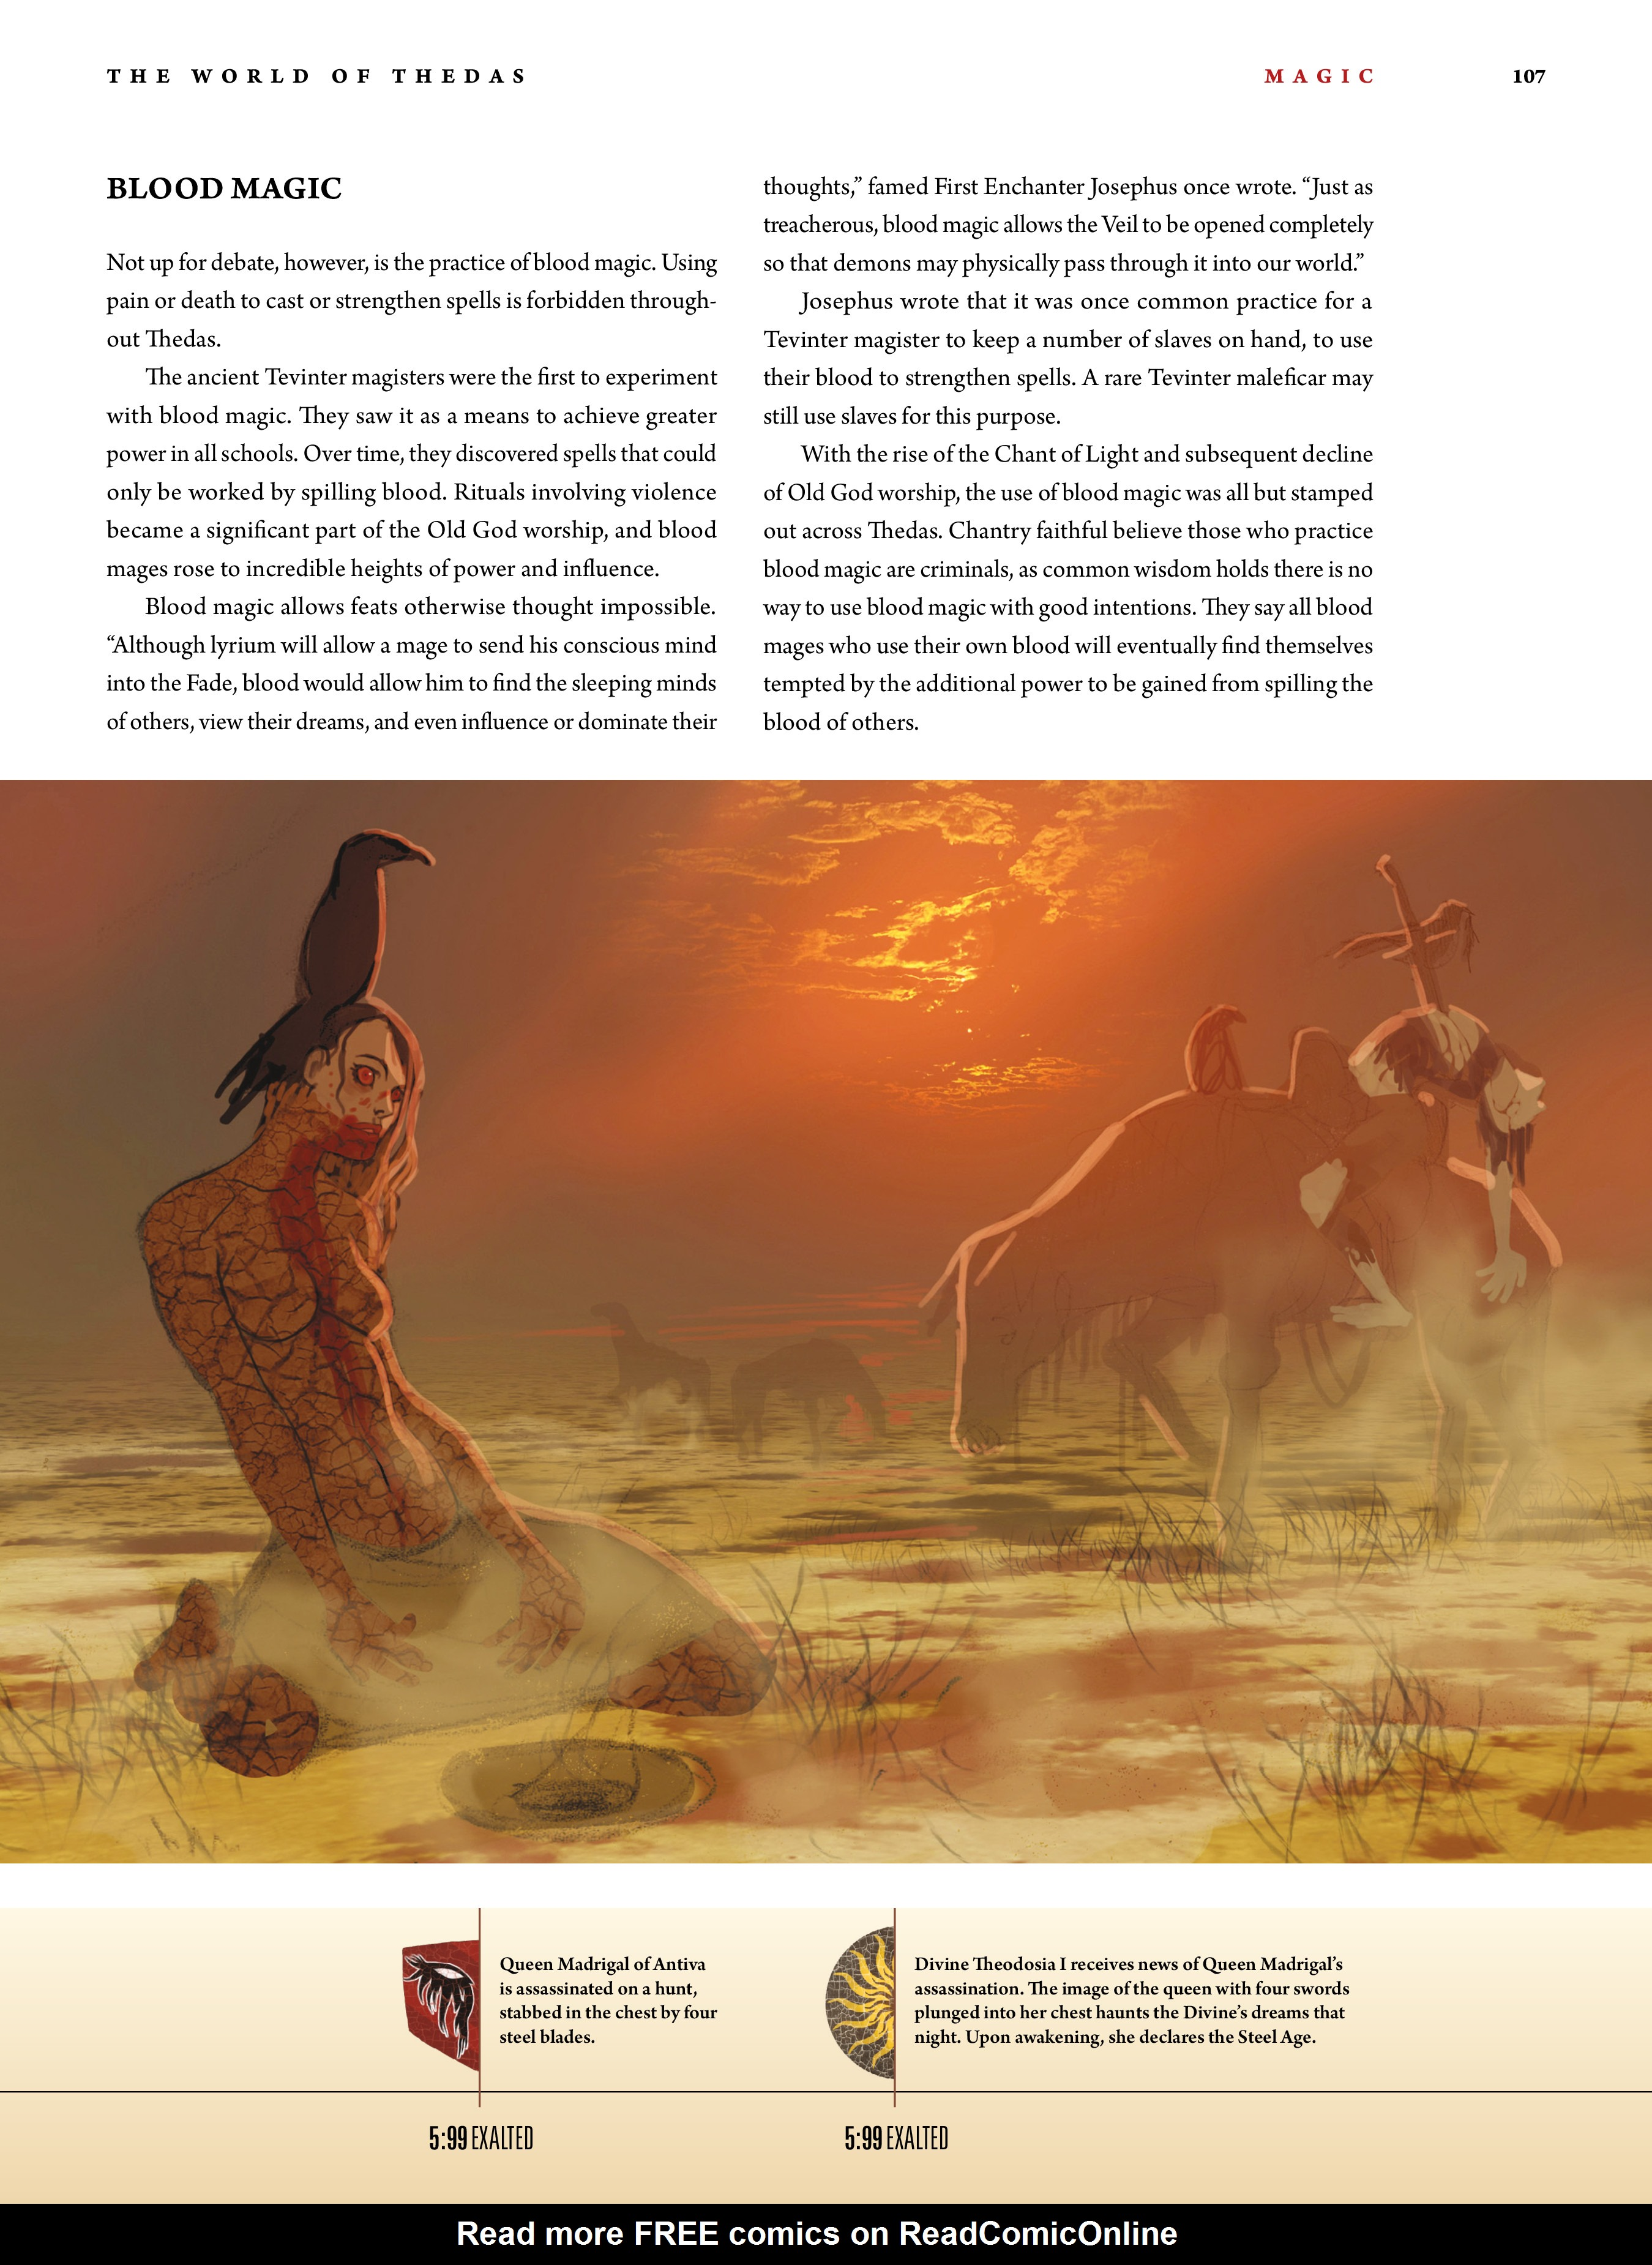 Read online Dragon Age: The World of Thedas comic -  Issue # TPB 1 - 87